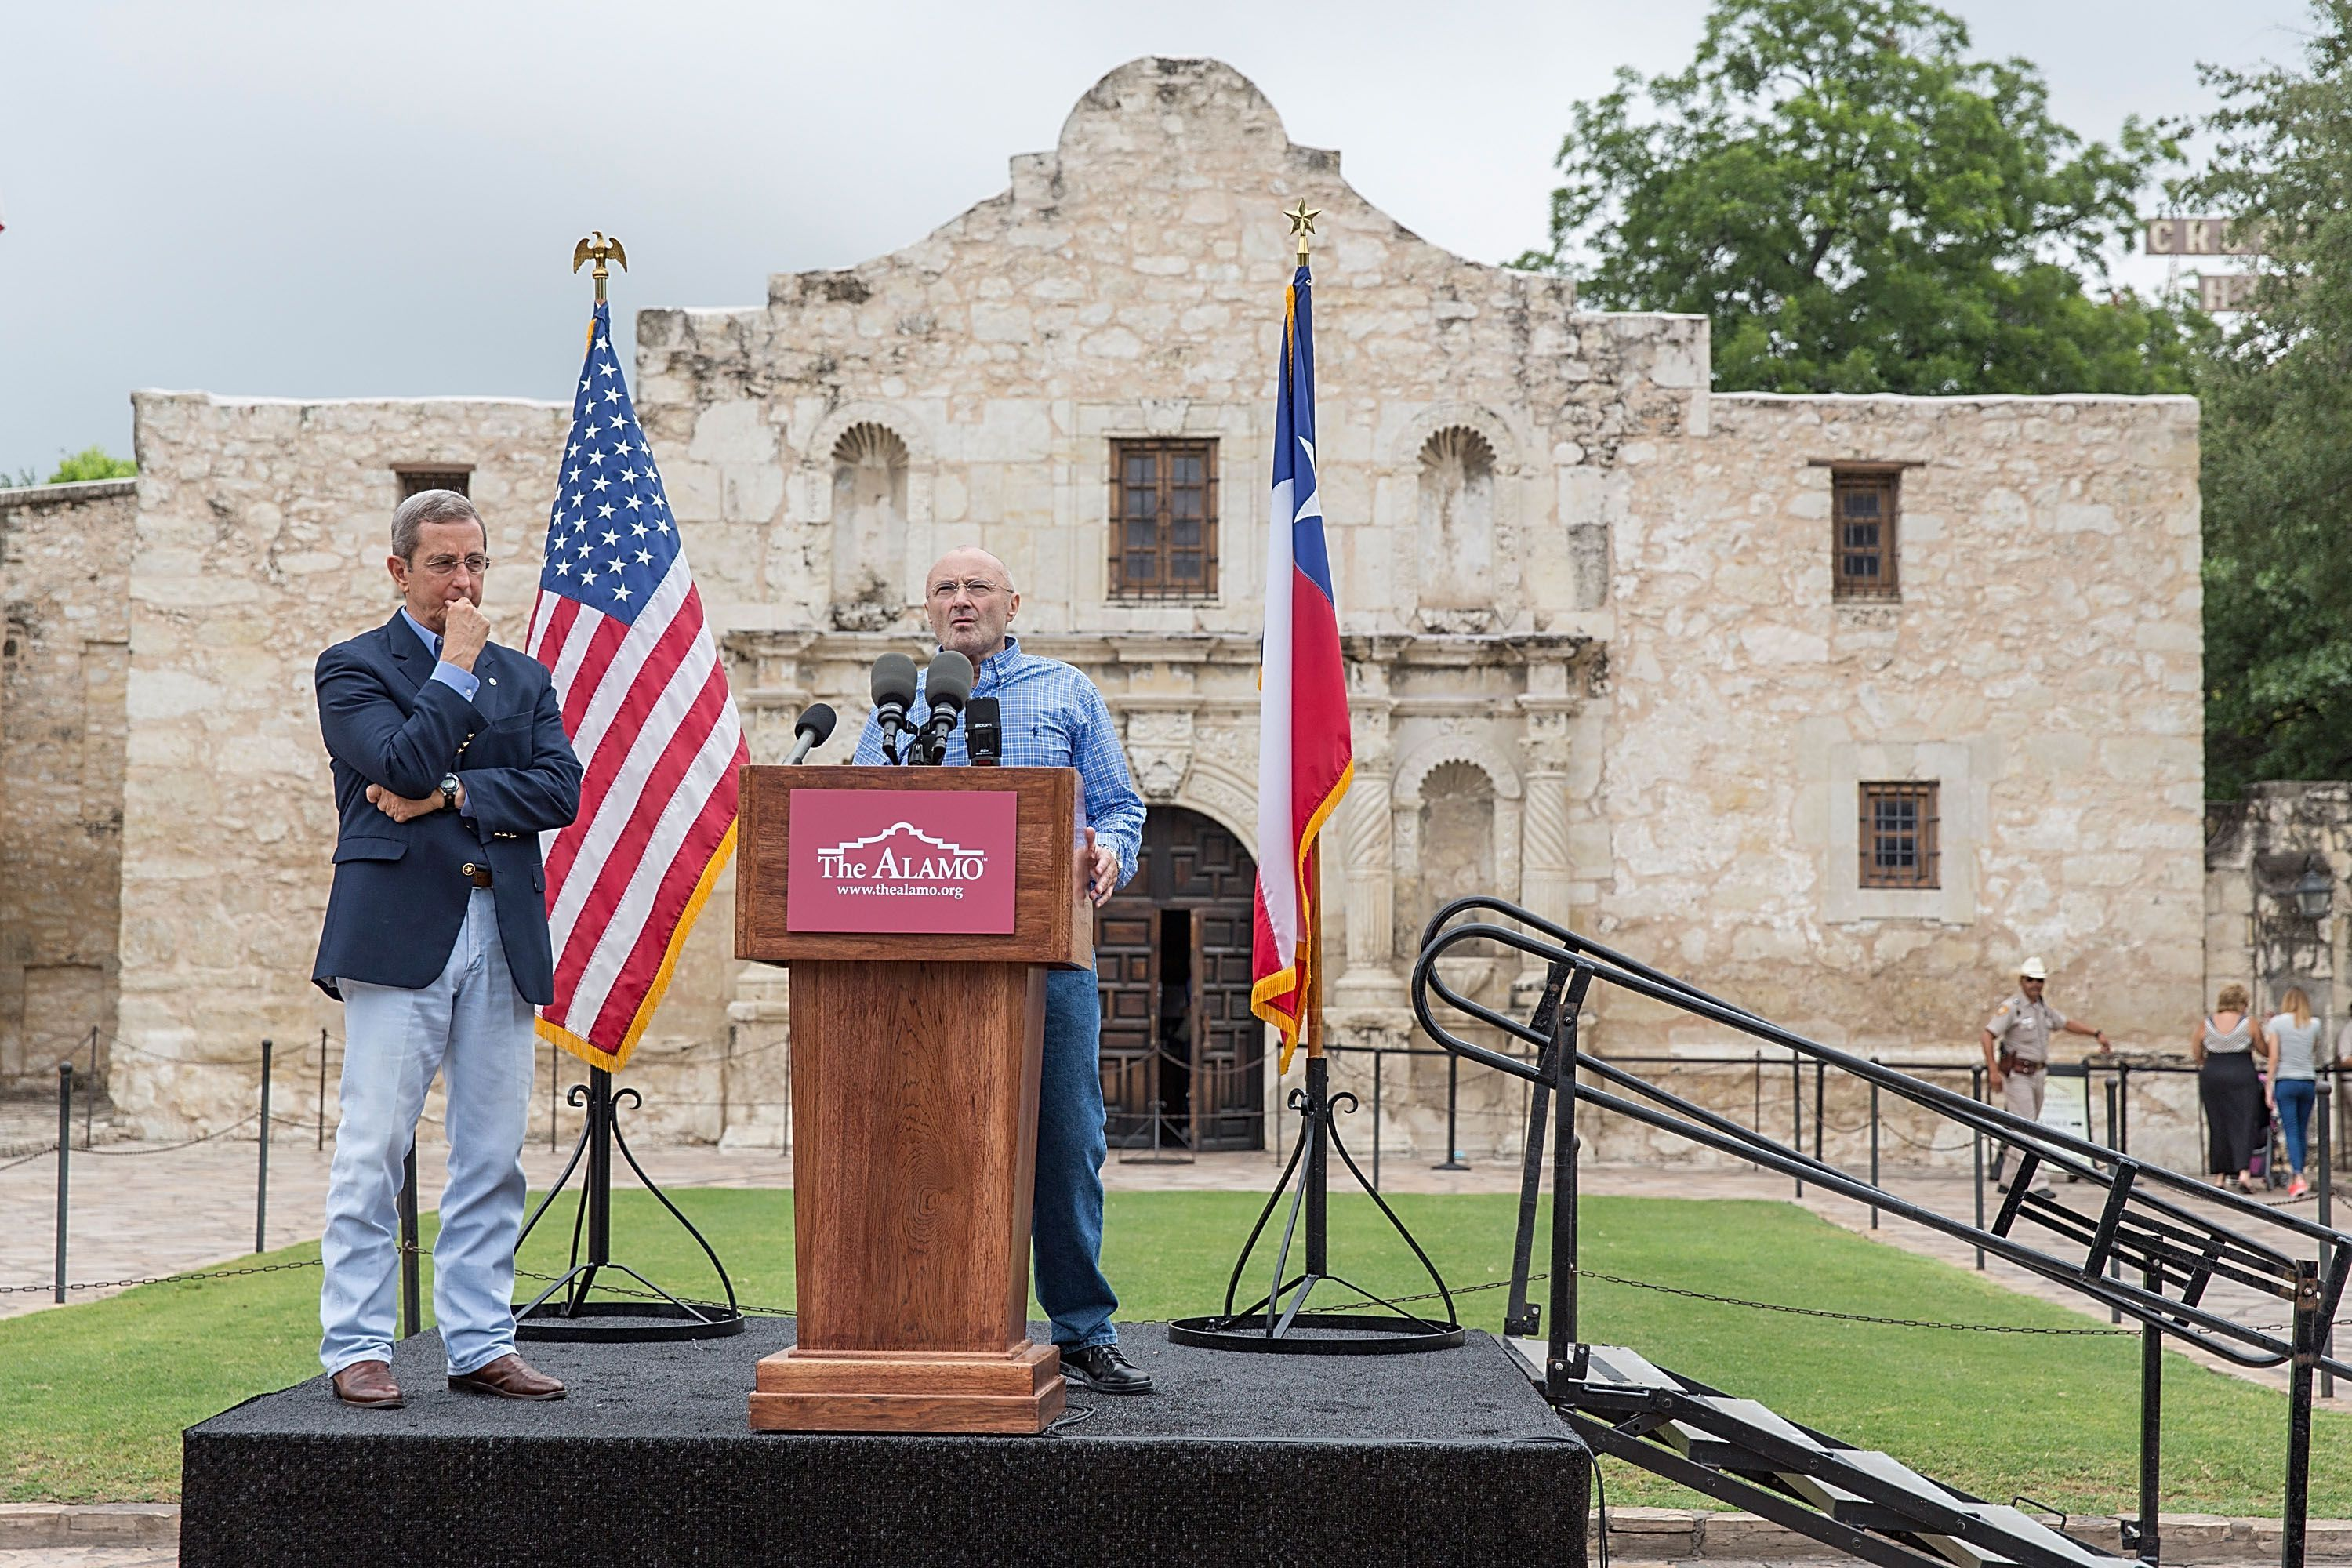 17 Fun Facts About The Alamo